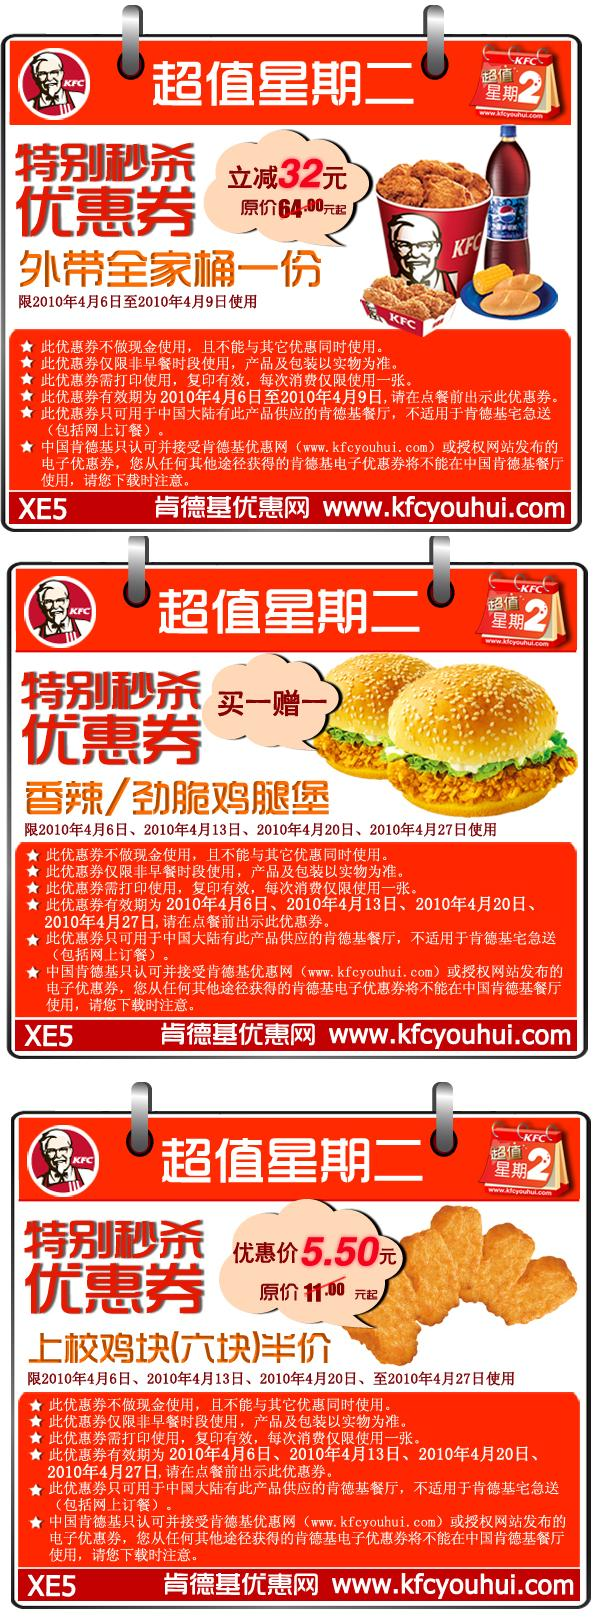 Shanghai stories coupons